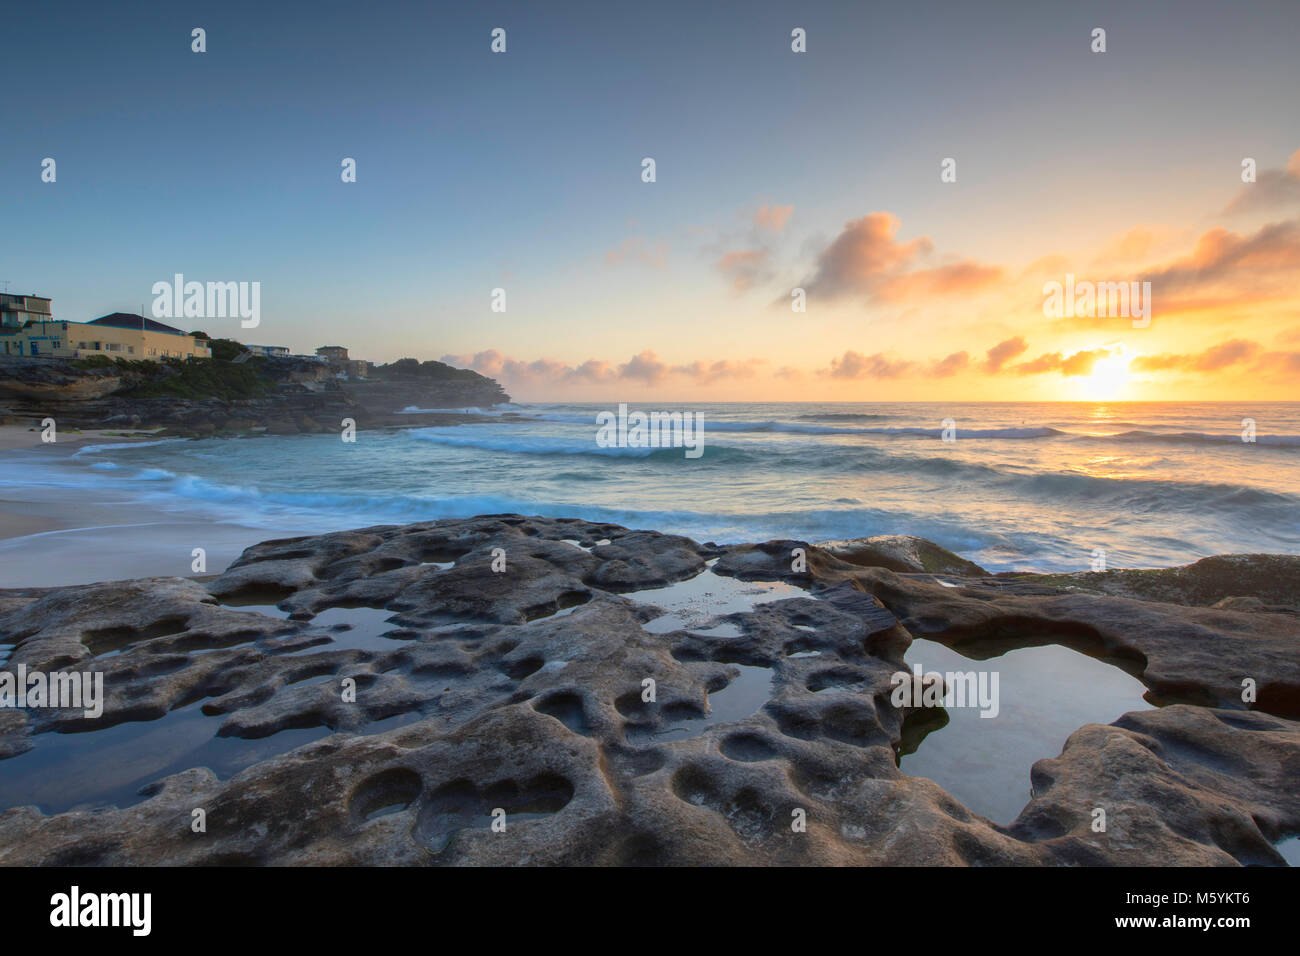 Tamarama Beach at sunrise, Sydney, New South Wales, Australia - Stock Image